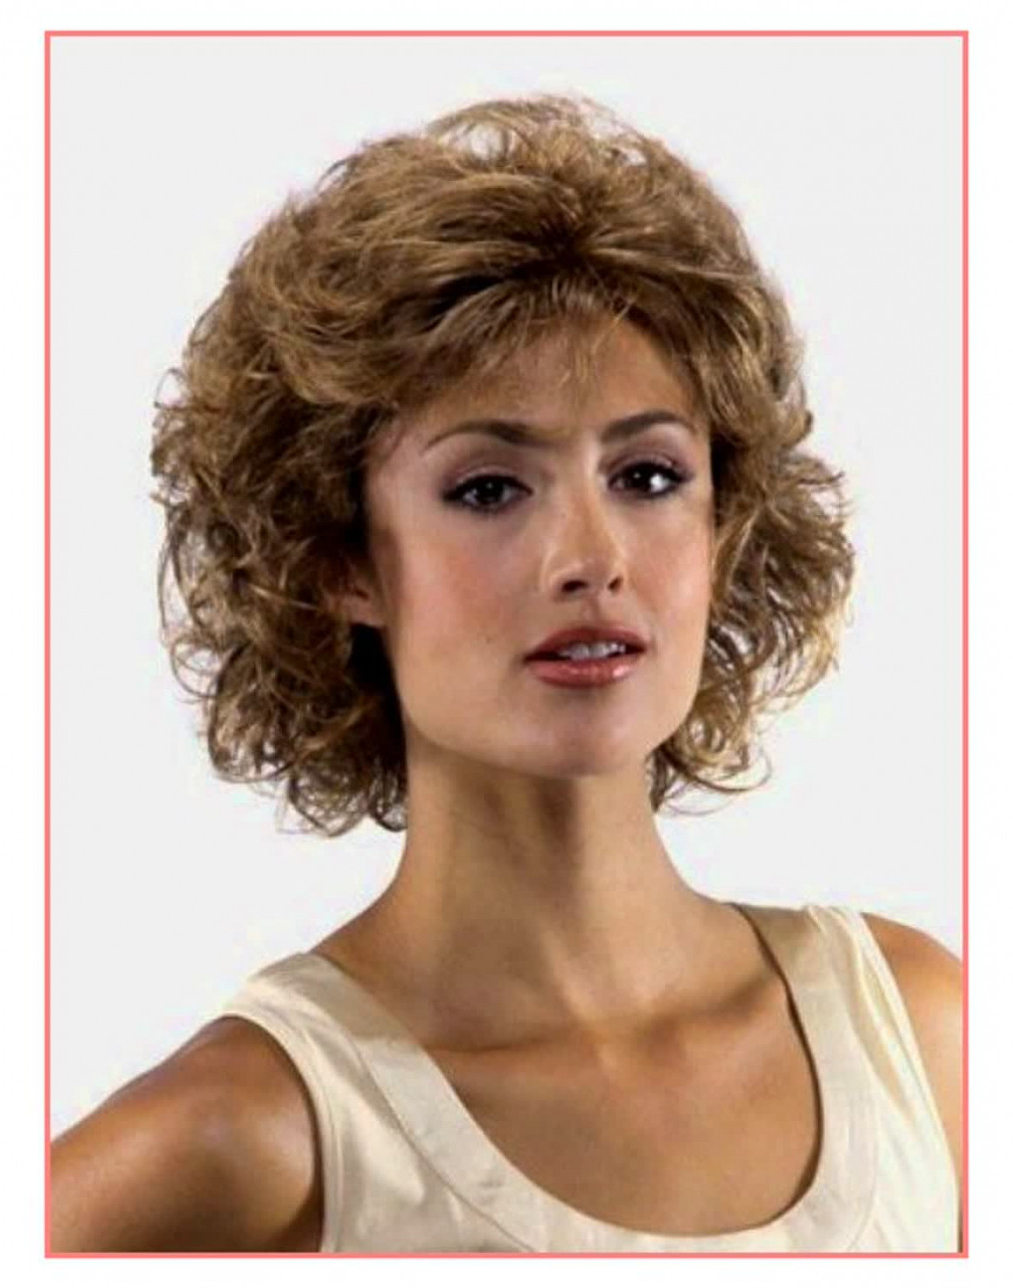 Haircuts For Curly Hair And Square Faces   Hairstyles And Haircuts Inside Short Haircuts For Square Face (View 22 of 25)